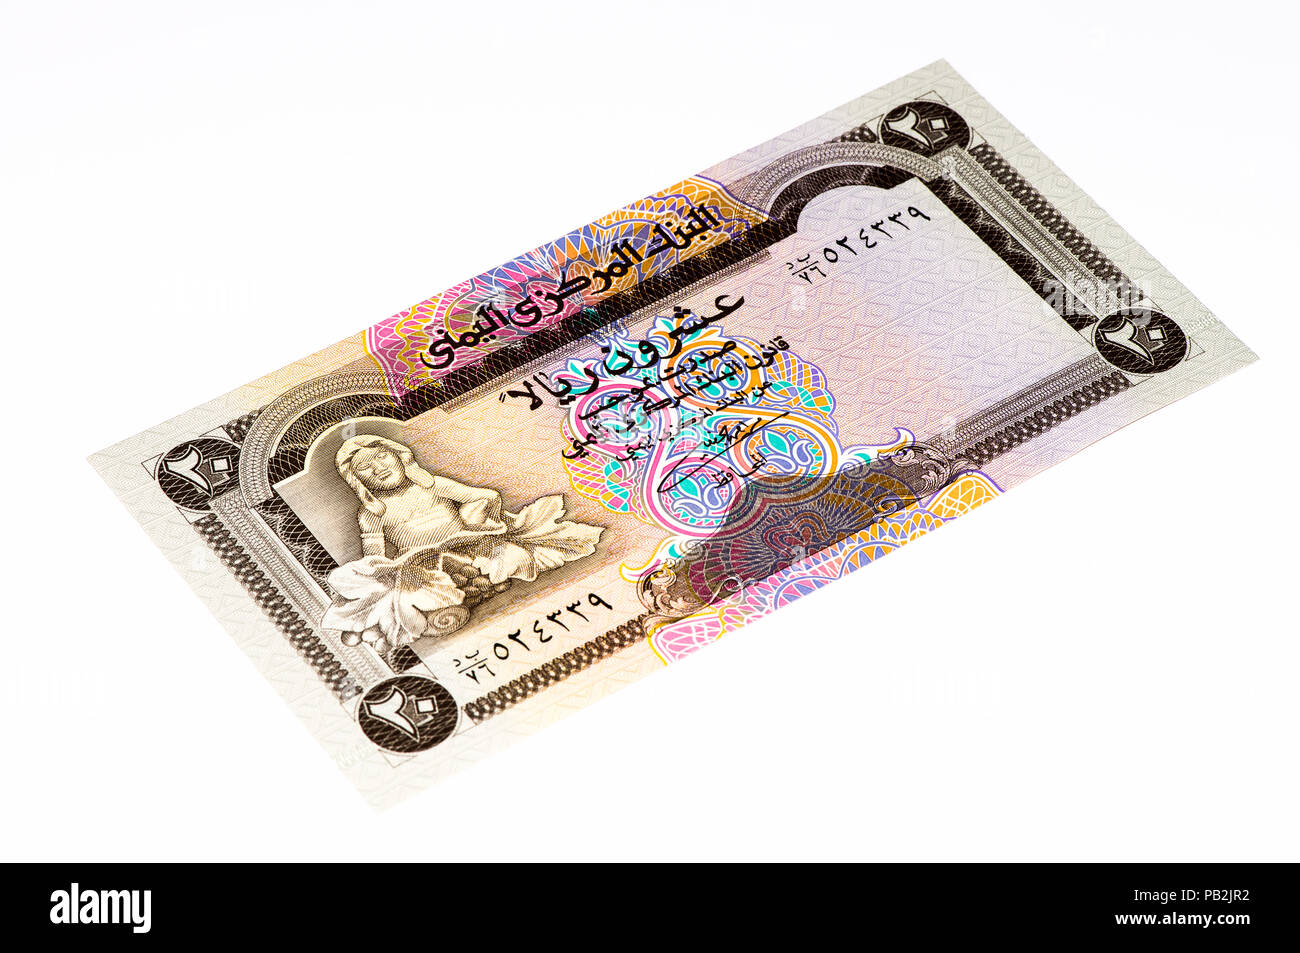 20 Yemeni rial bank note. Rial is the national currency of Yemen - Stock Image